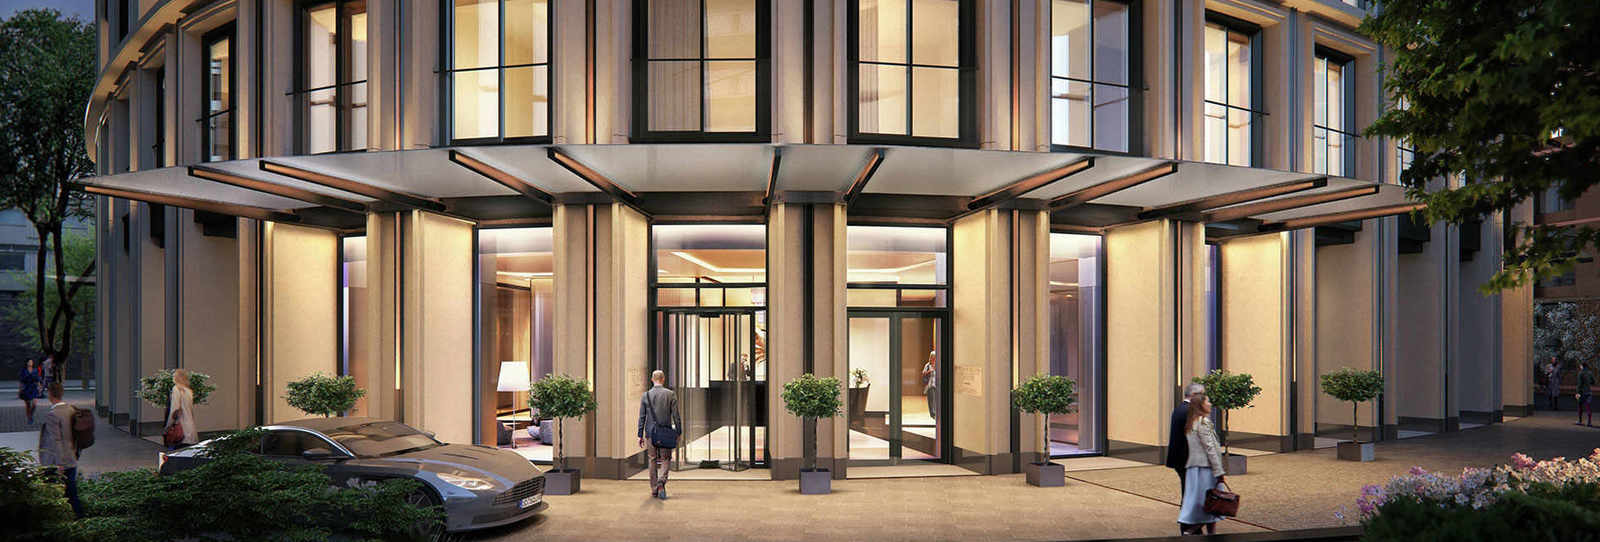 Top 5 upcoming london luxury real estate developments for Luxury real estate in london